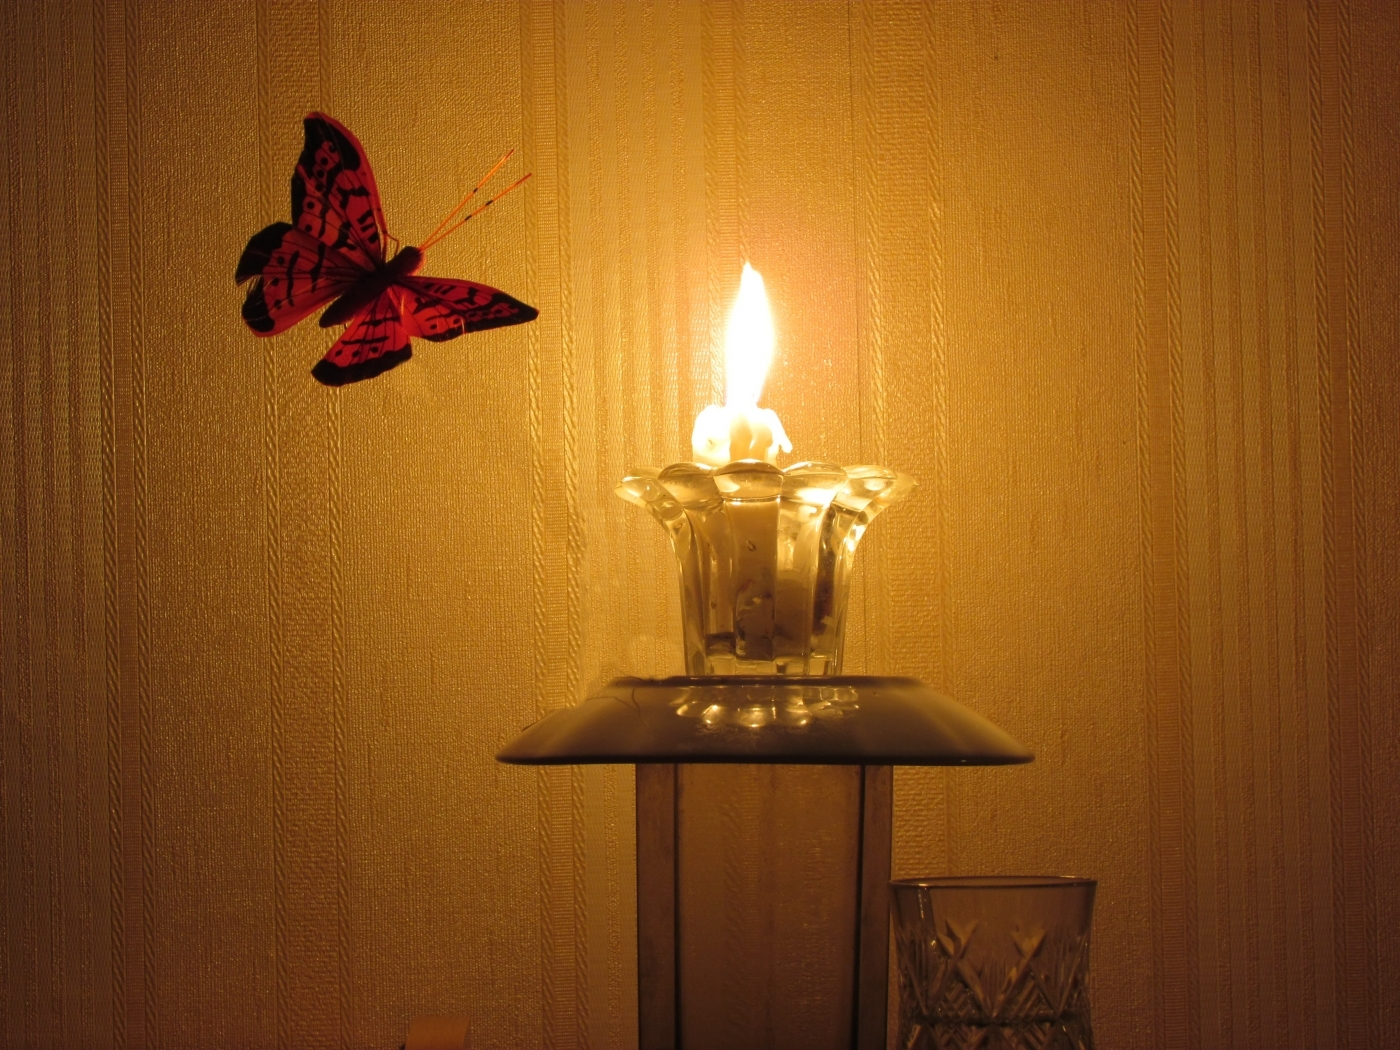 44102 download wallpaper Butterflies, Insects, Objects screensavers and pictures for free